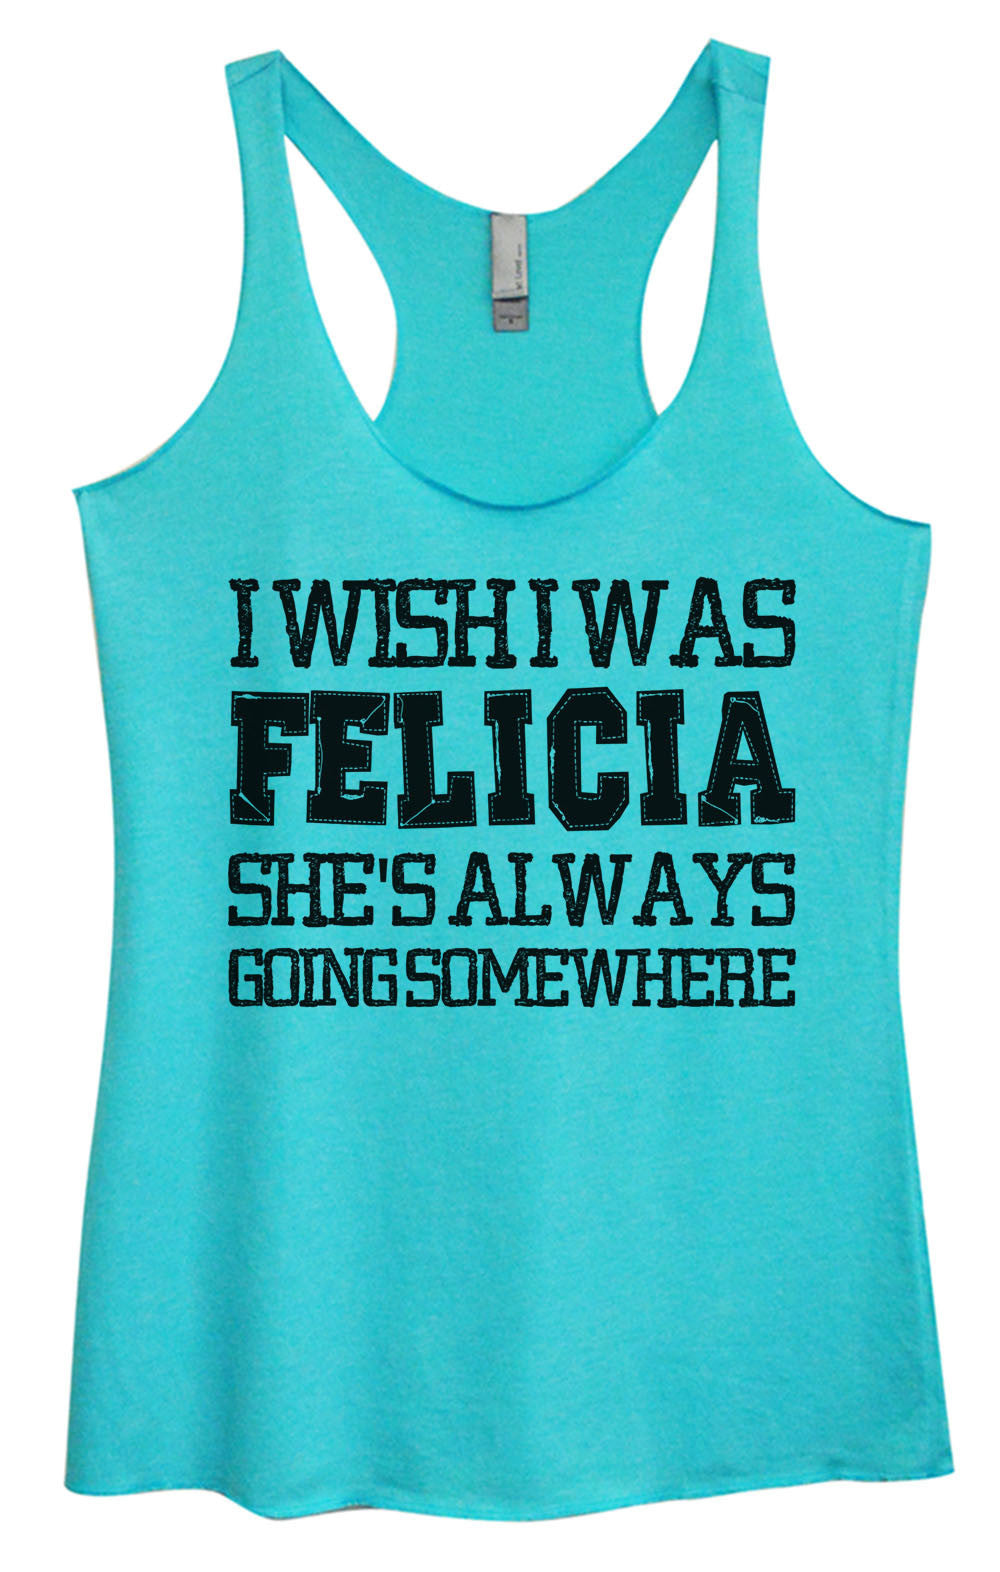 Womens Fashion Triblend Tank Top - I Wish I Was Felicia She's Always Going Some Where - Tri-997 - Funny Shirts Tank Tops Burnouts and Triblends  - 4